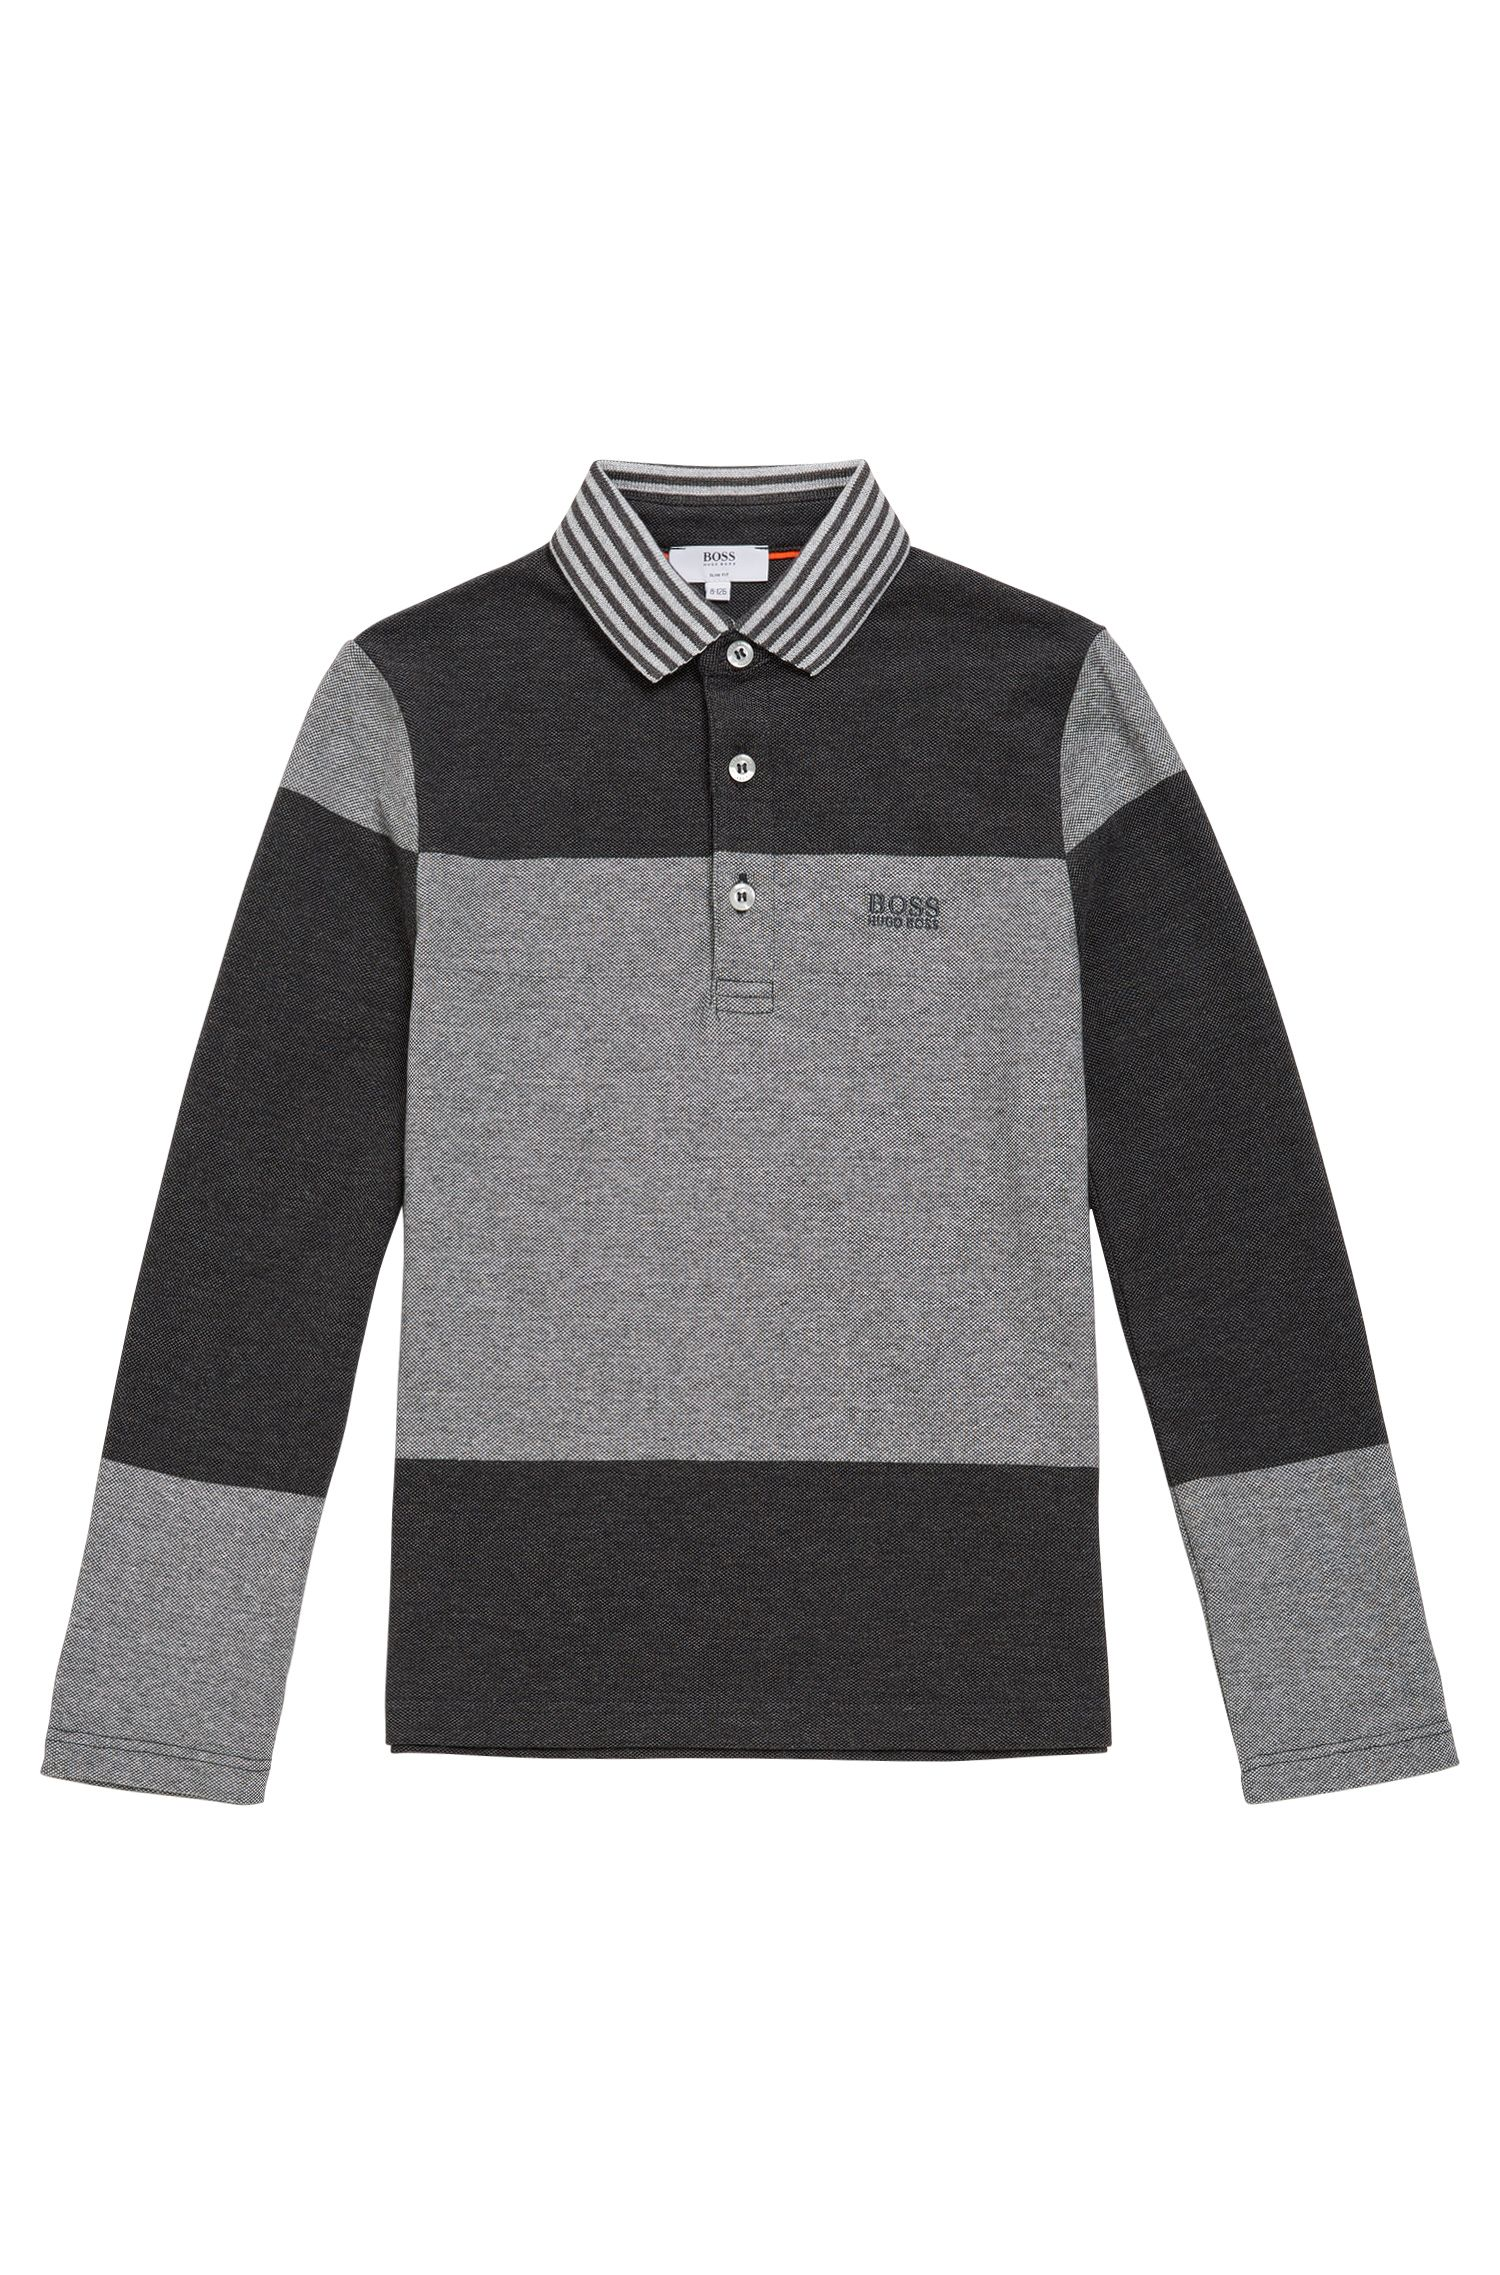 'J25996' | Boys Cotton Polo Shirt